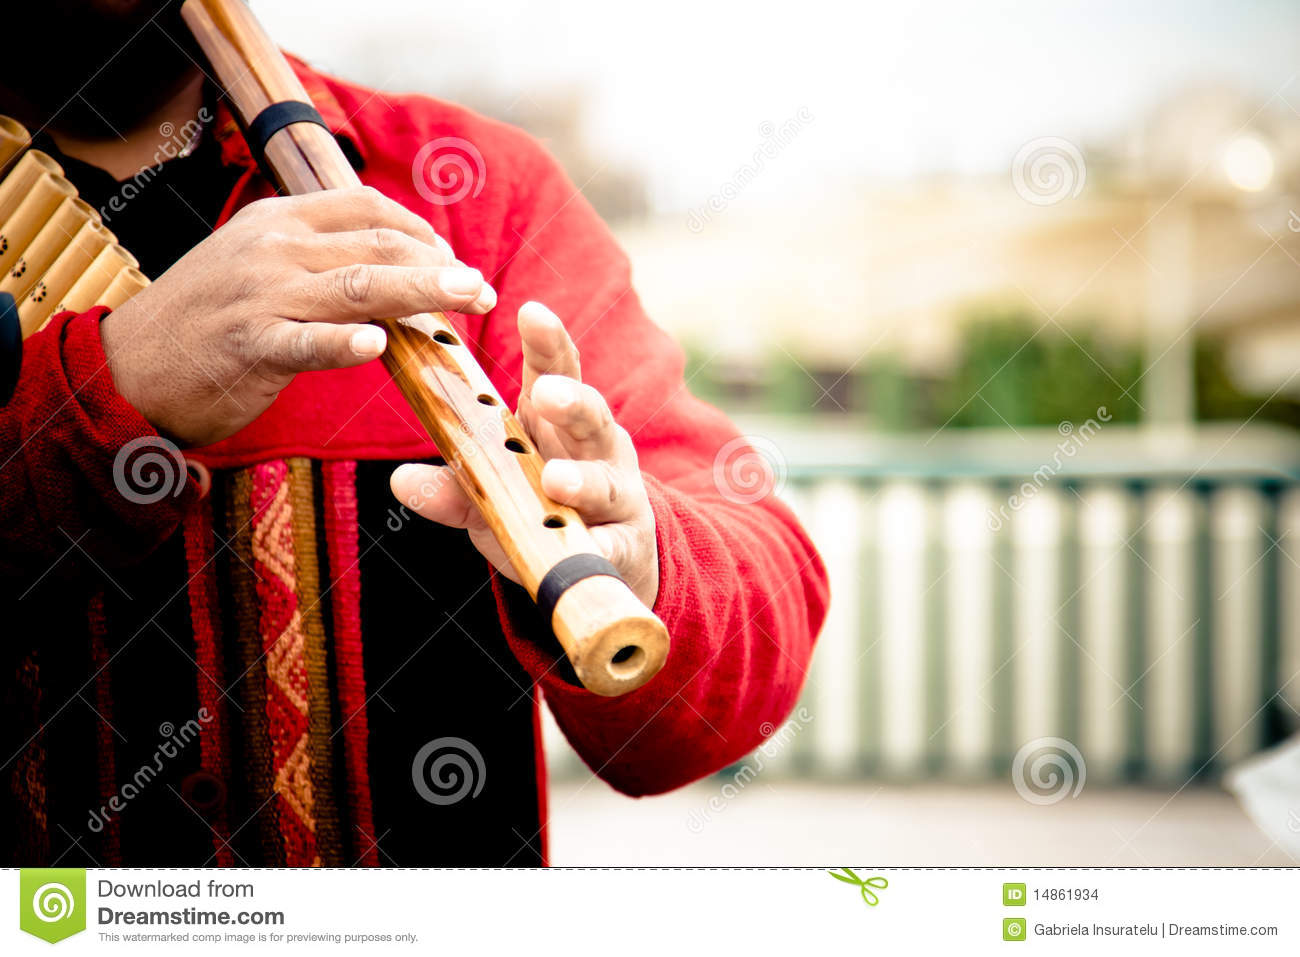 Immigrant playing music